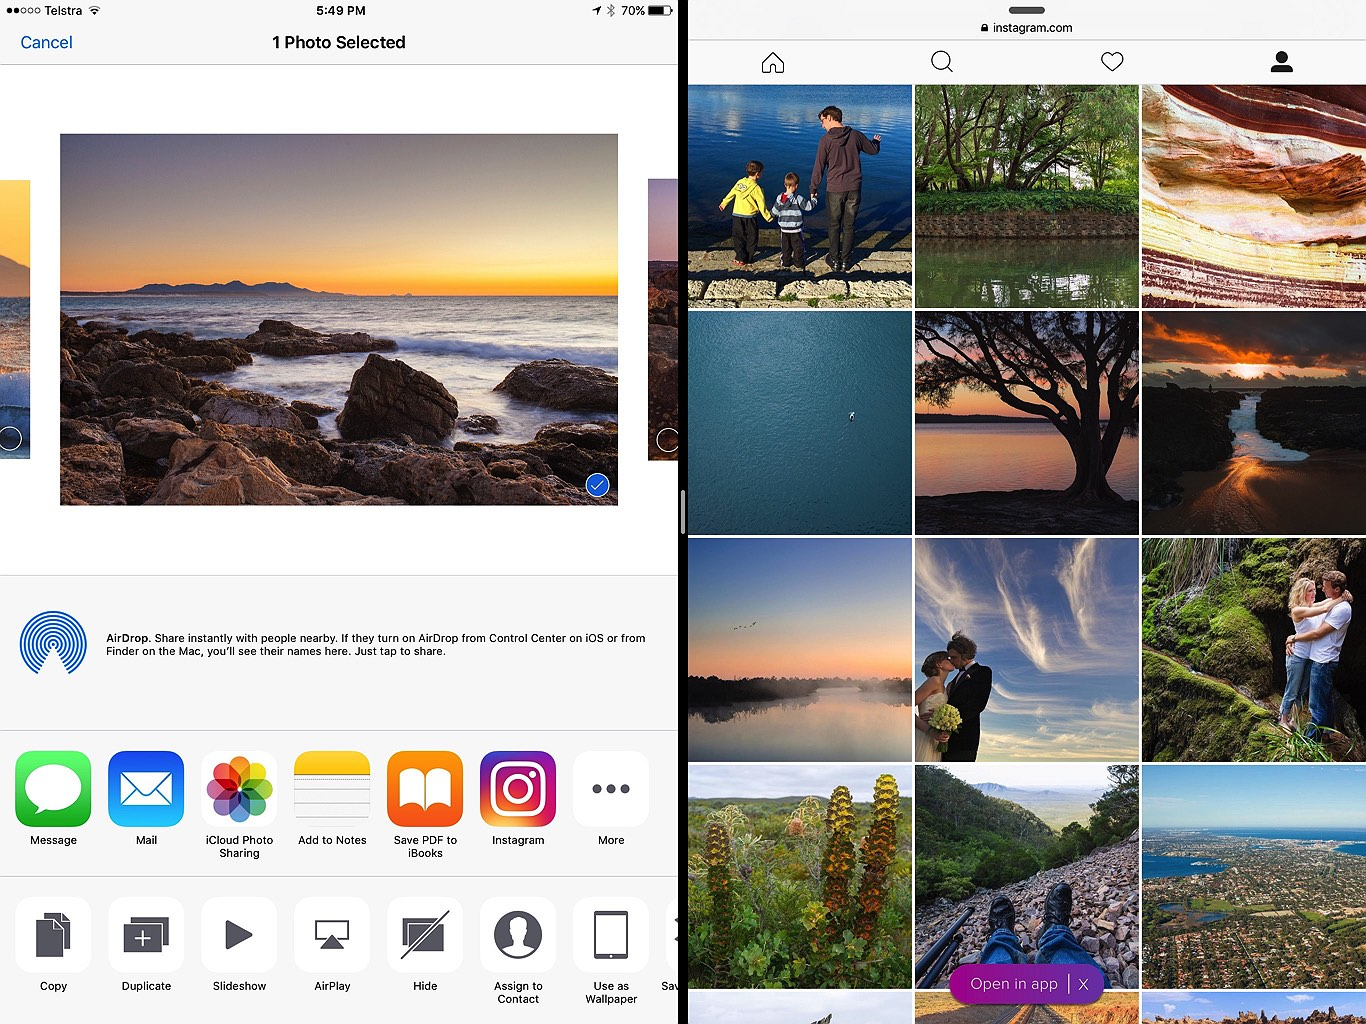 How to post images to Instagram from the iPad